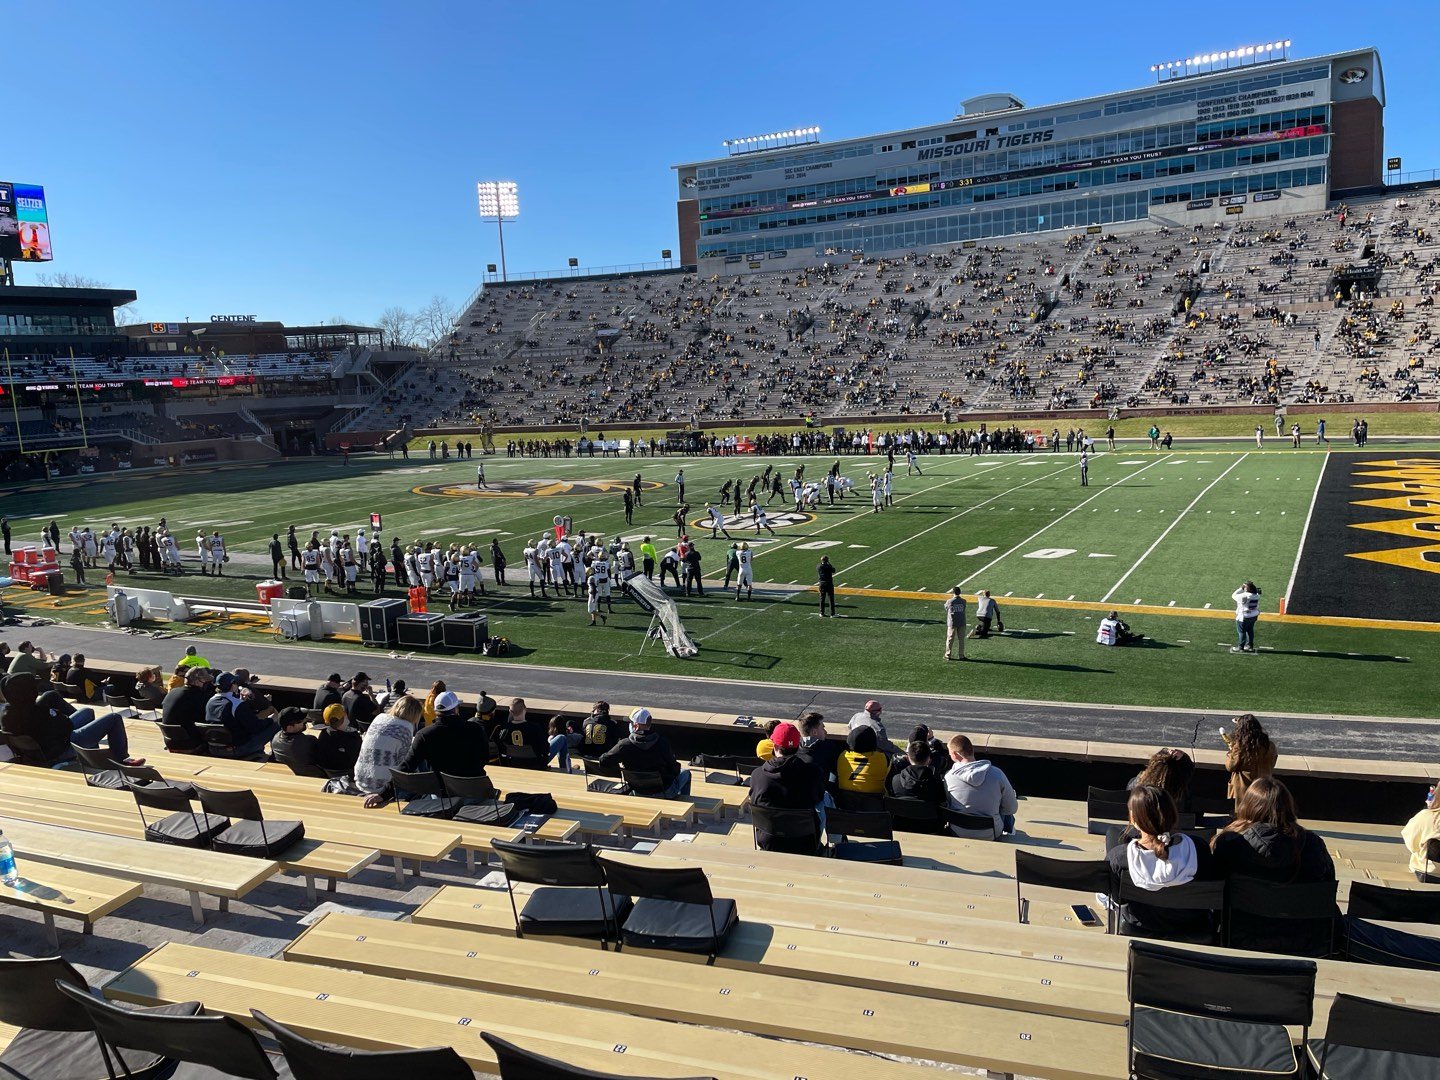 Faurot Field Section 109 Row 21 Seat 20